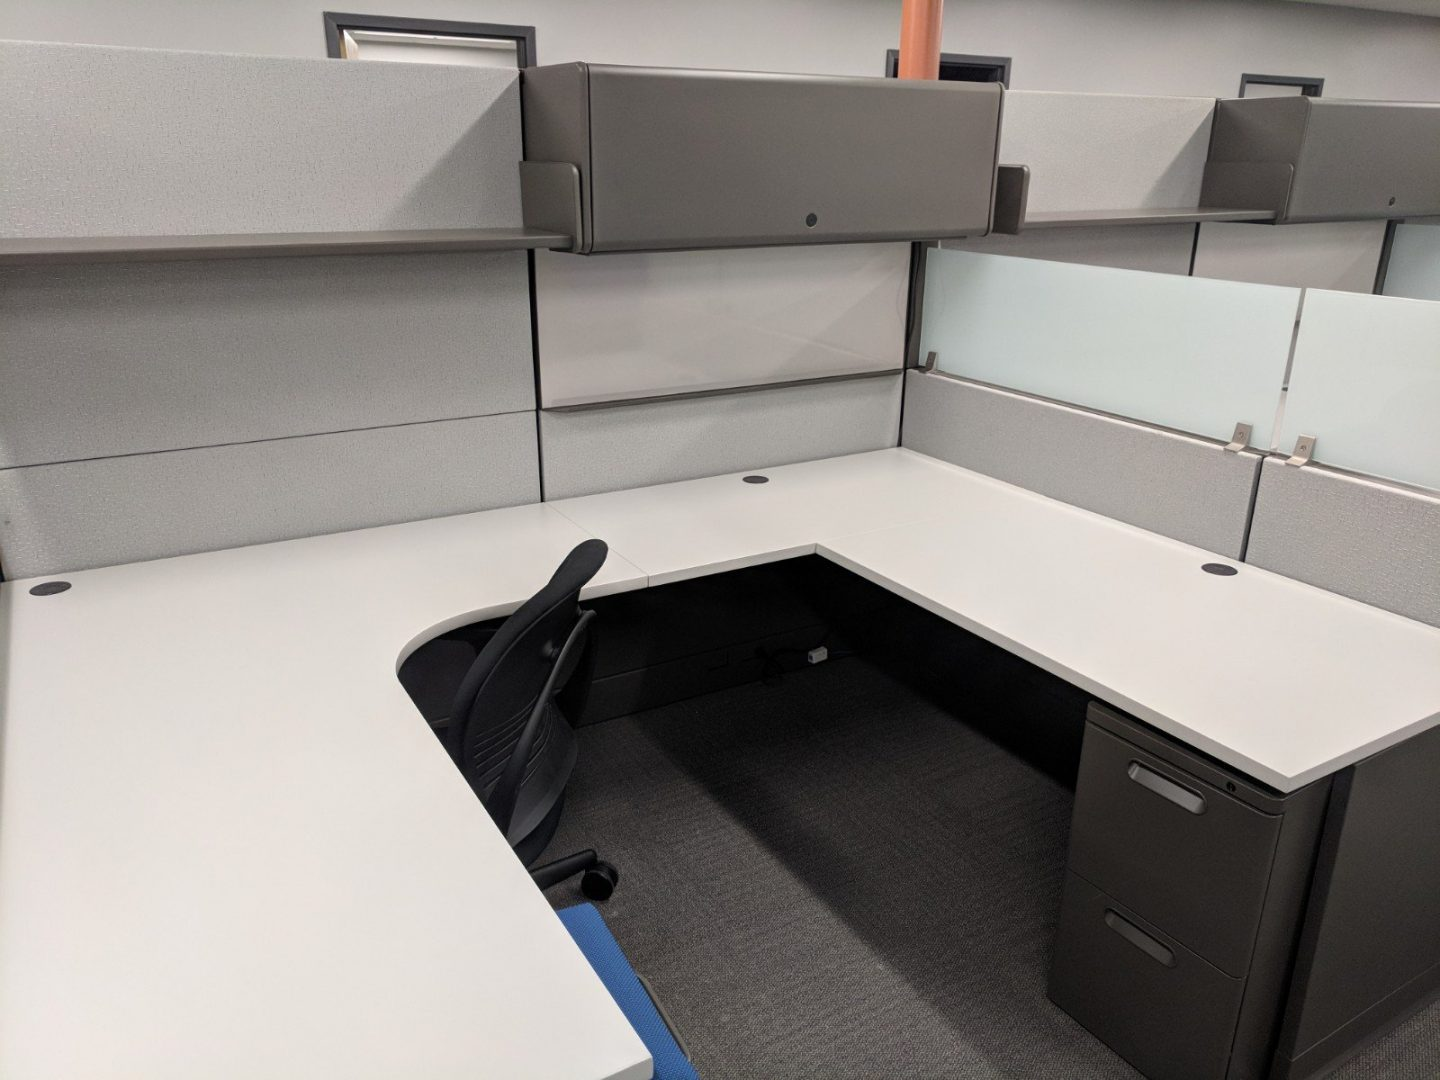 cubicle with u-shaped desk and file cabinet